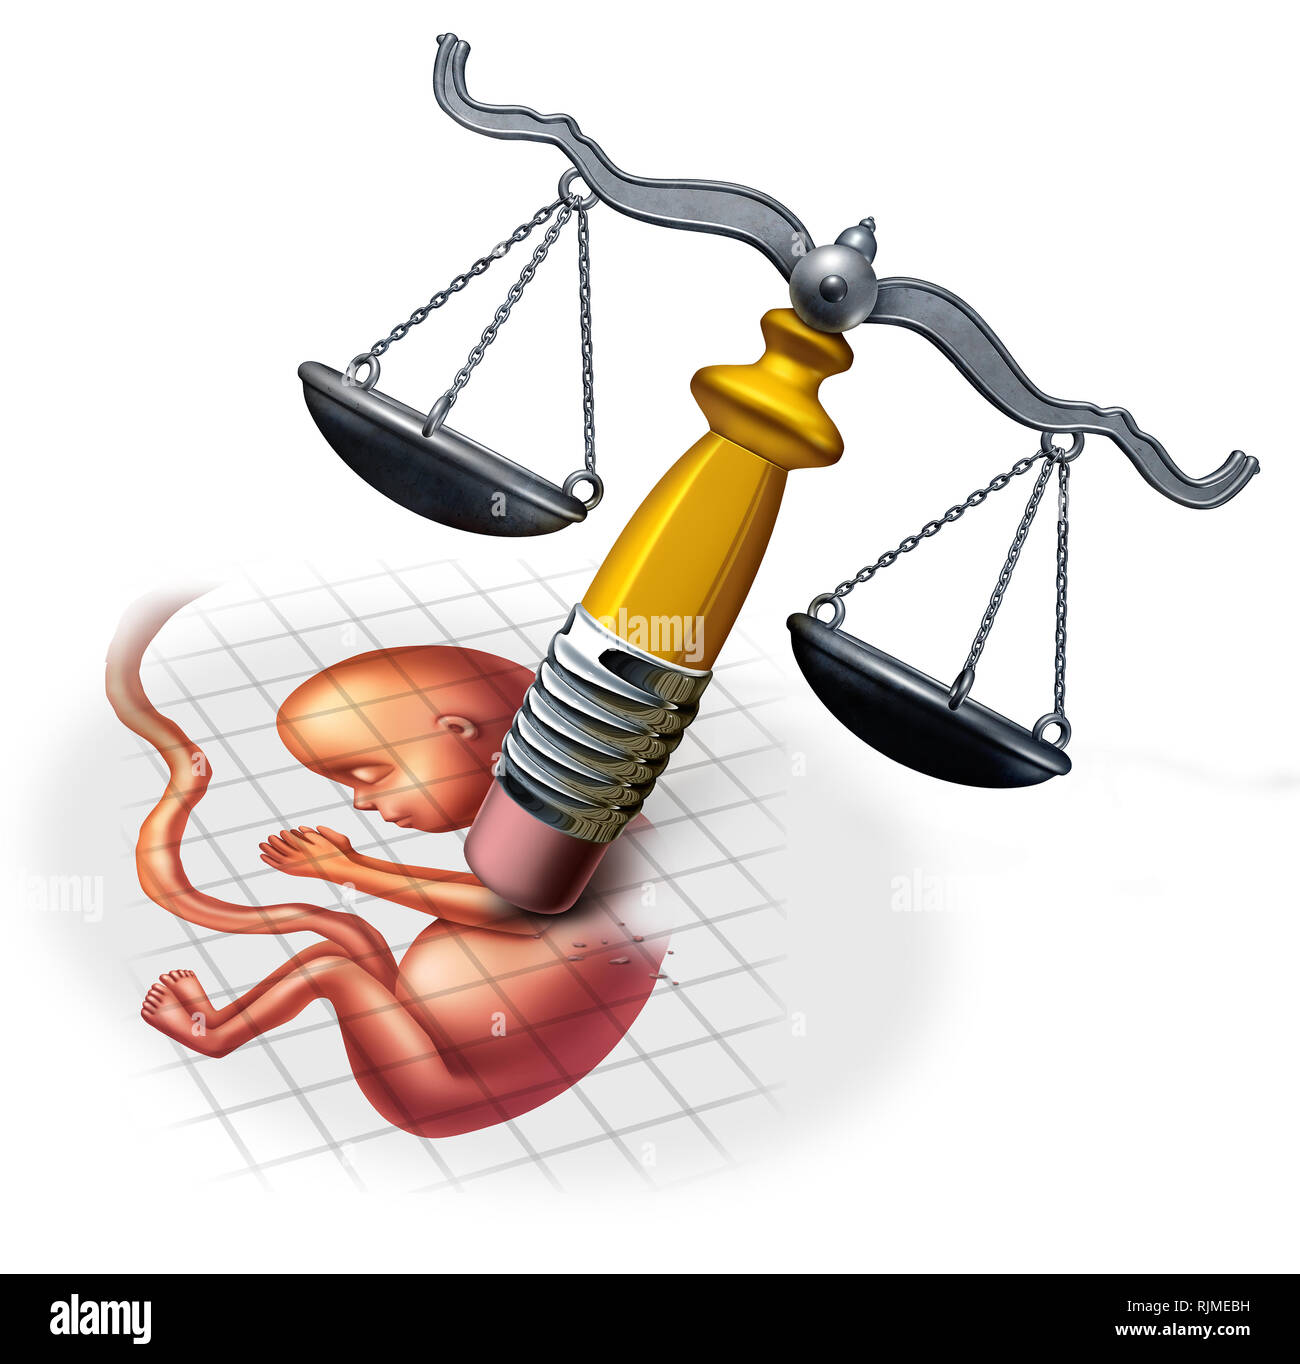 Abortion law concepts and social ethics in regards to late term pregnancy as a fetus being erased by a justice scale with 3D illustration elements. - Stock Image